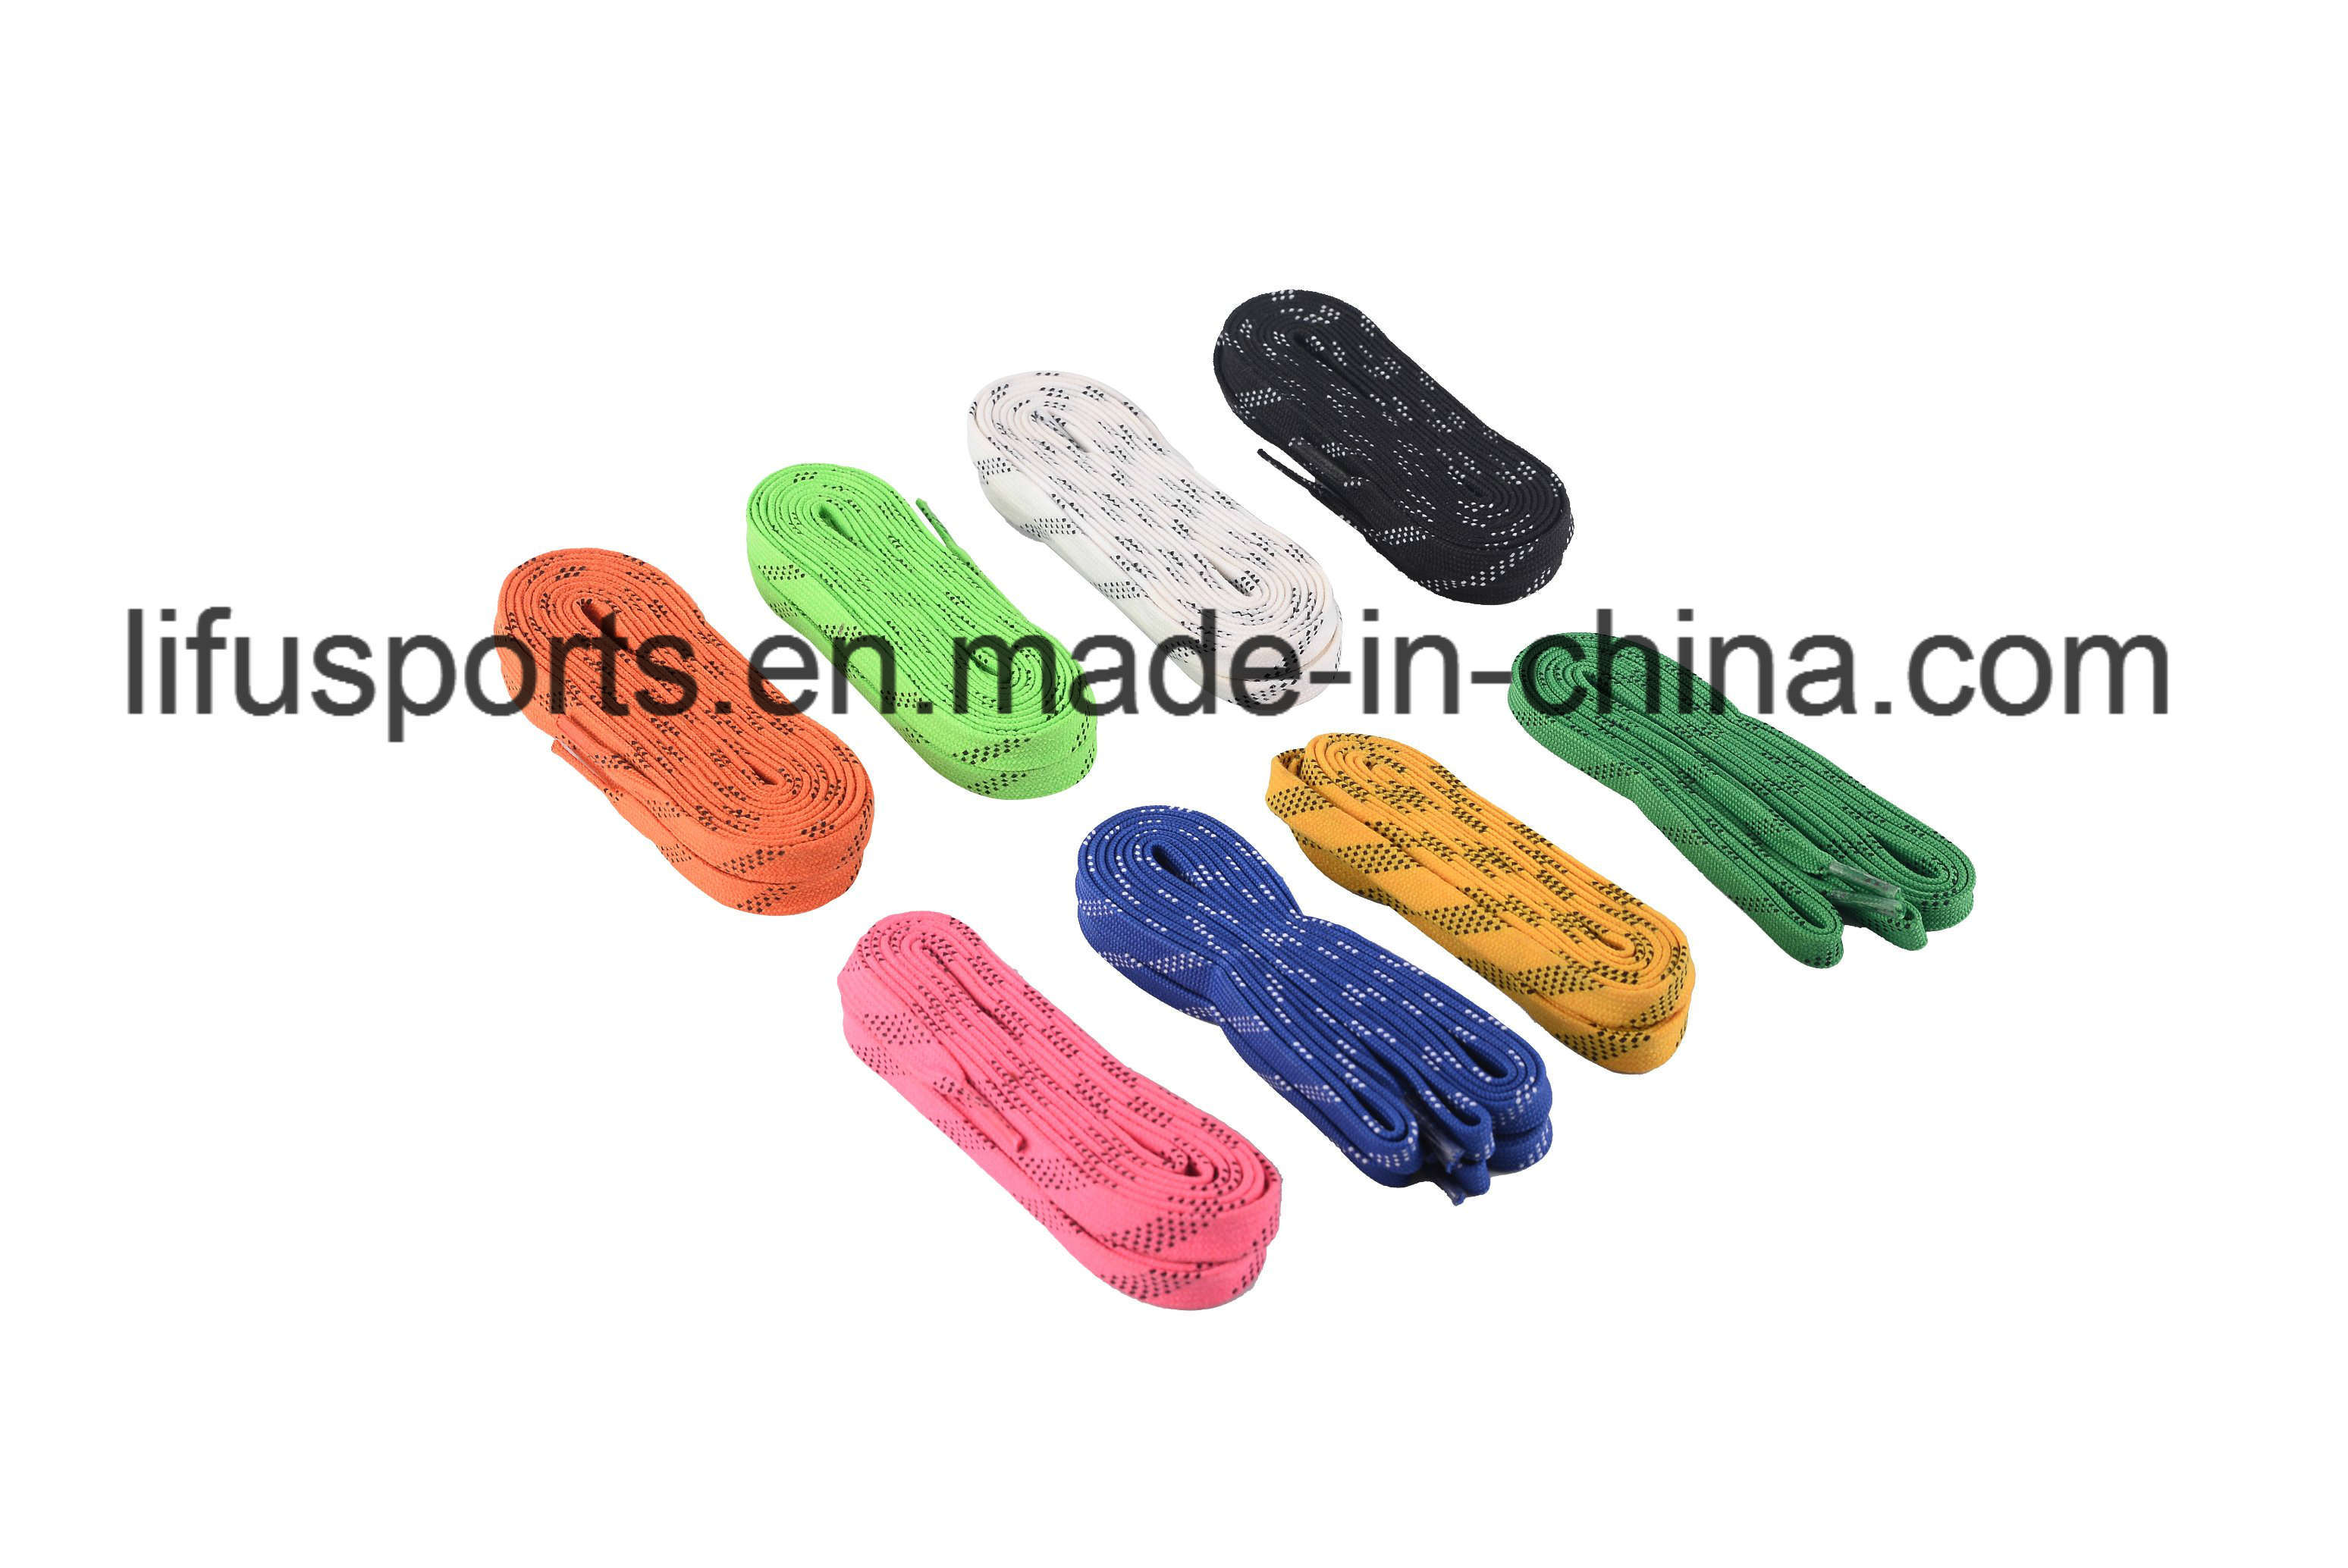 Customized Size Multicolor Waxed Cotton Hockey Lace